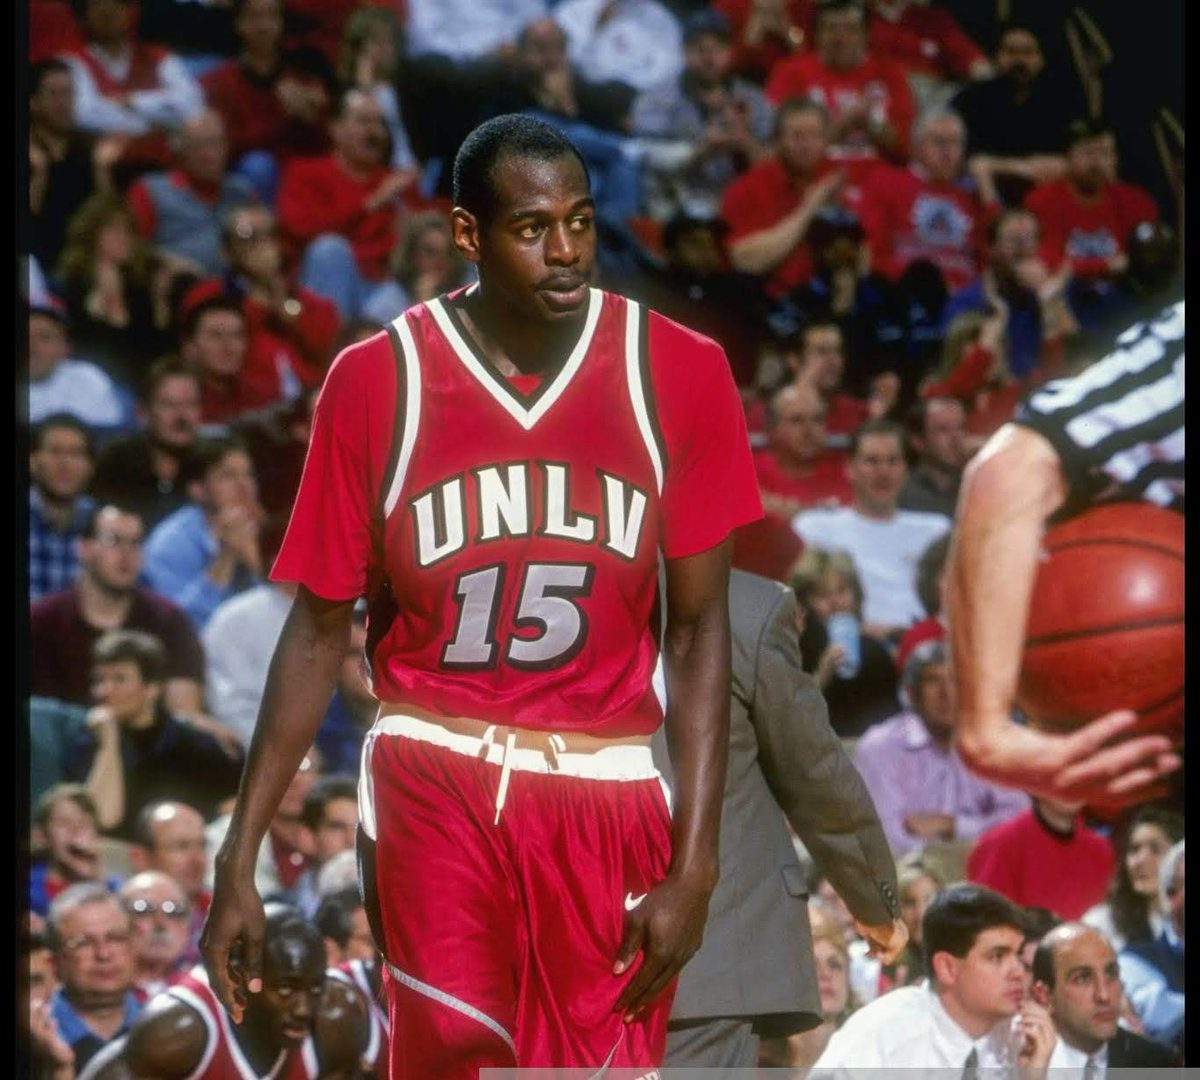 greatest unlv runnin rebels of all time